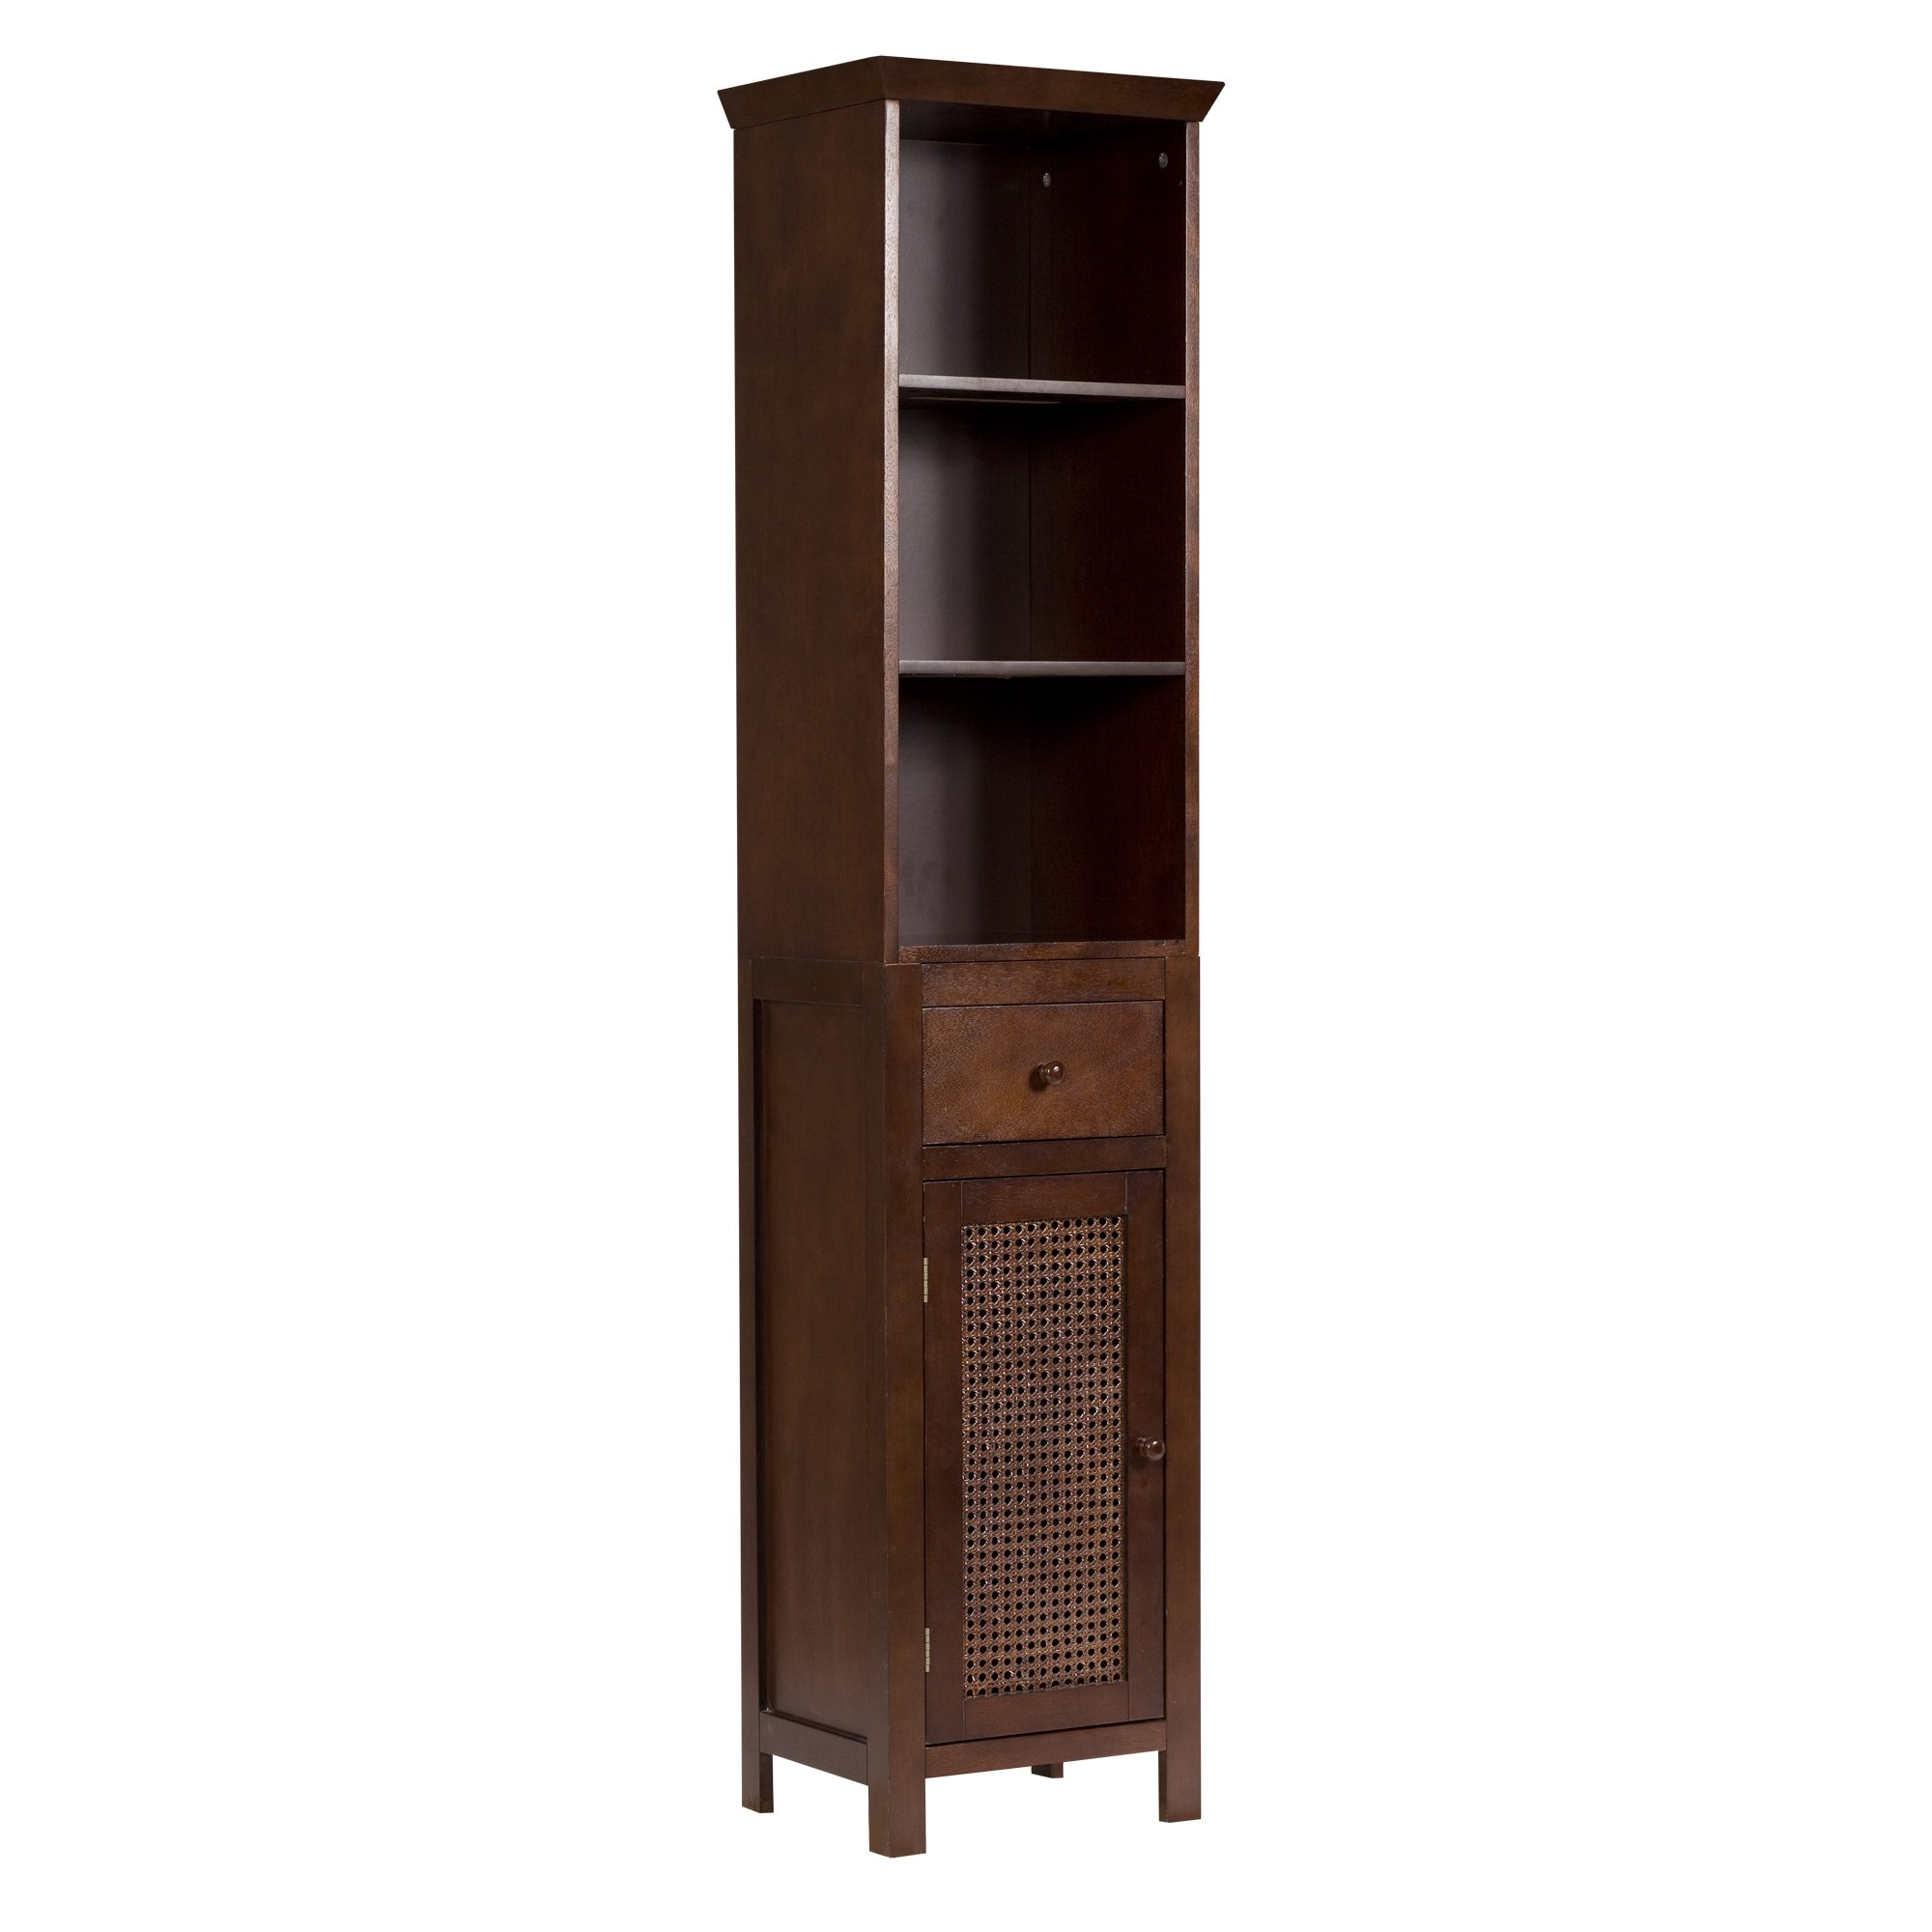 Elegant Home Fashions Shelved Linen Tower with Drawer and Cane-Paneled Cupboard, Cane Brown by Elegant Home Fashions